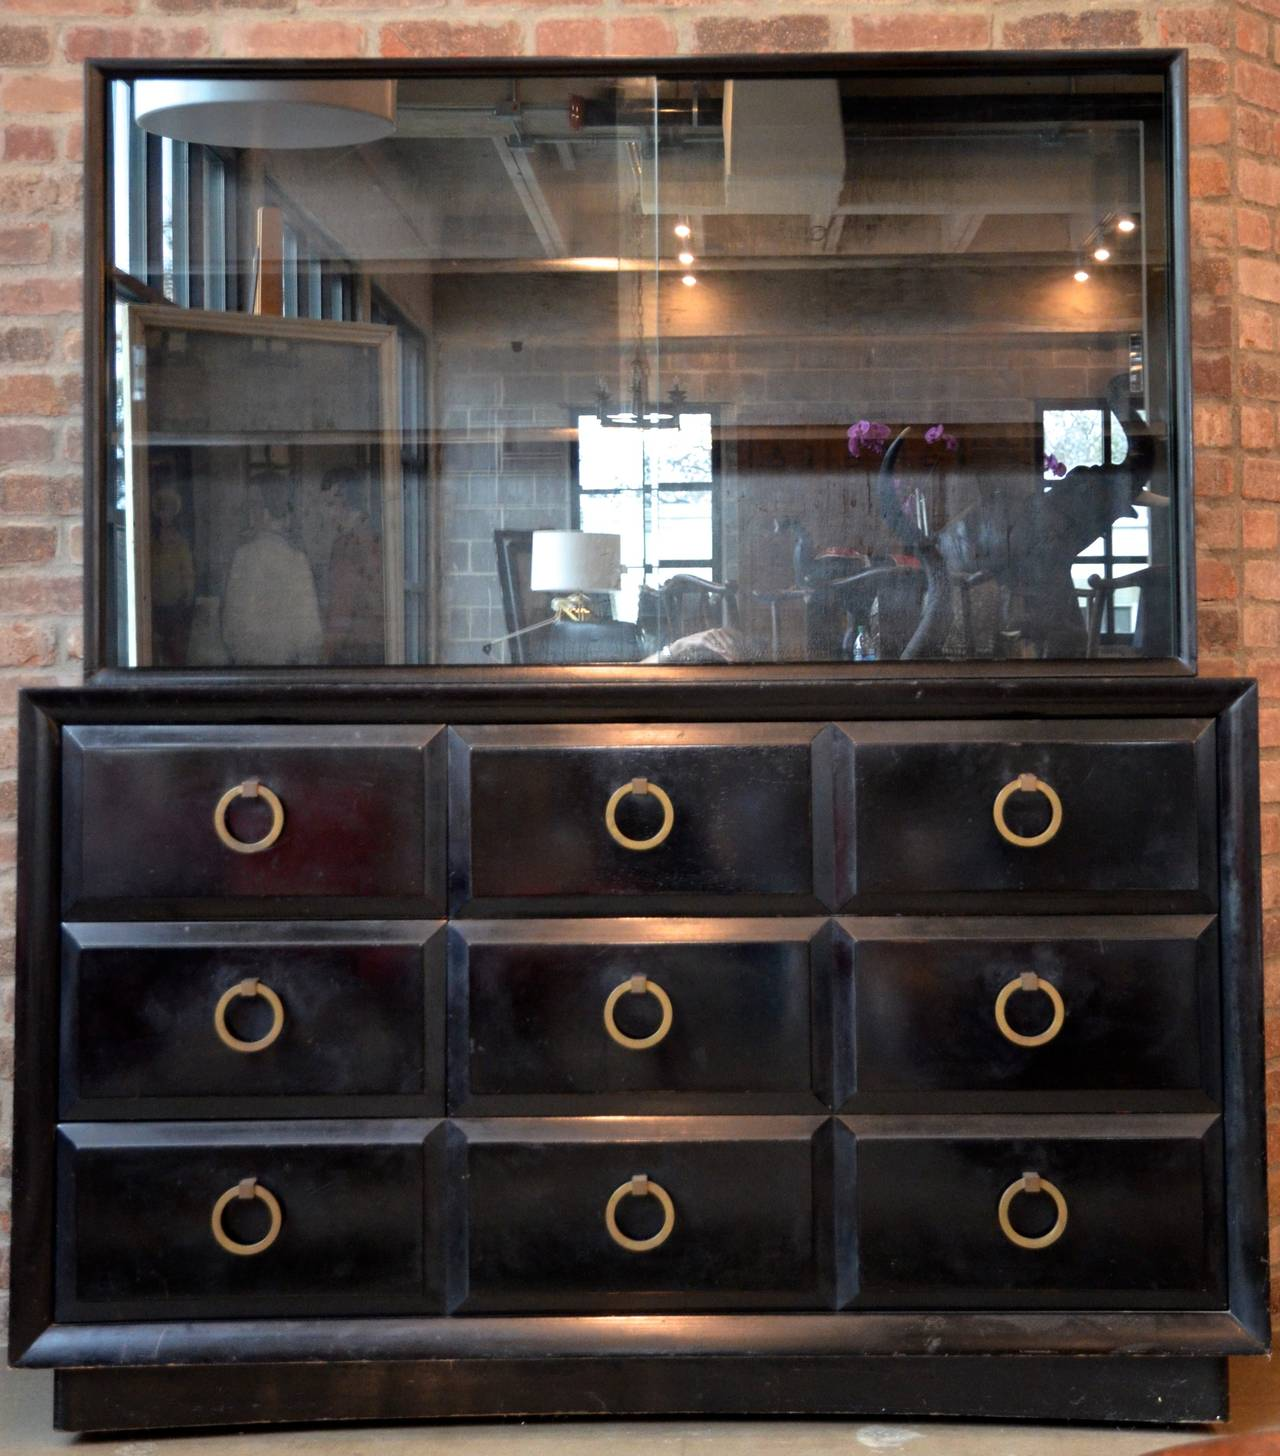 This is one of the most collectible case pieces by T. H. Robsjohn-Gibbings with its iconic brass ring hardware. Dresser has five drawers in base and two adjustable shelves behind sliding glass doors above. Removal of shelves and glass reveal a 27